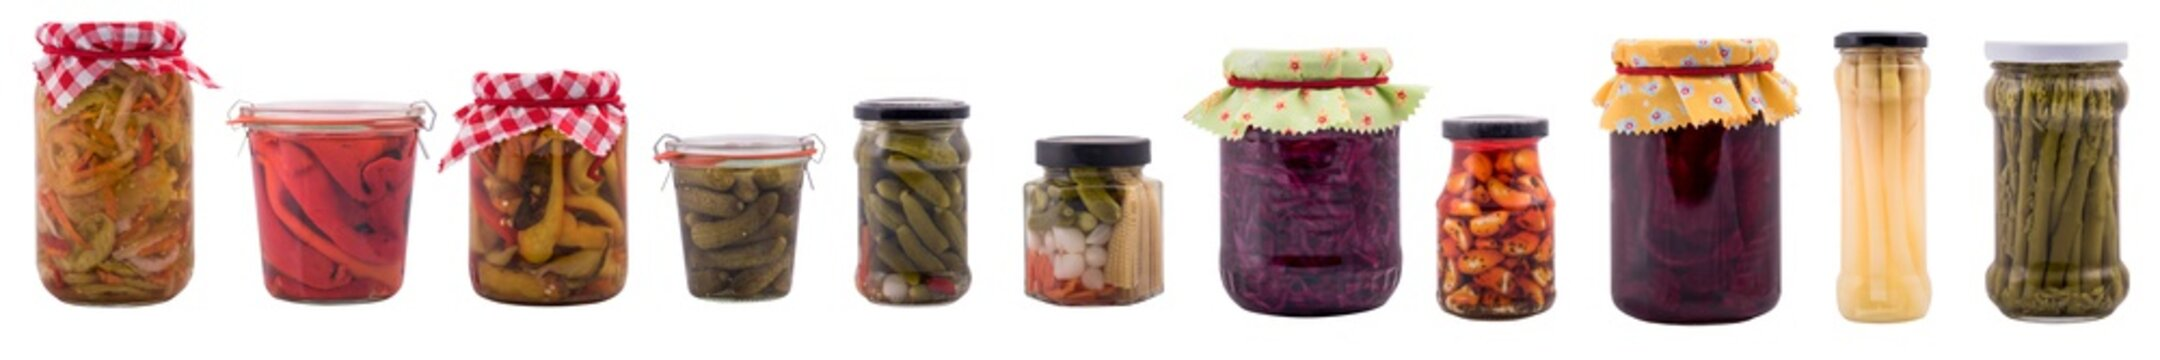 Wide banner with preserved food in jars, isolated on white